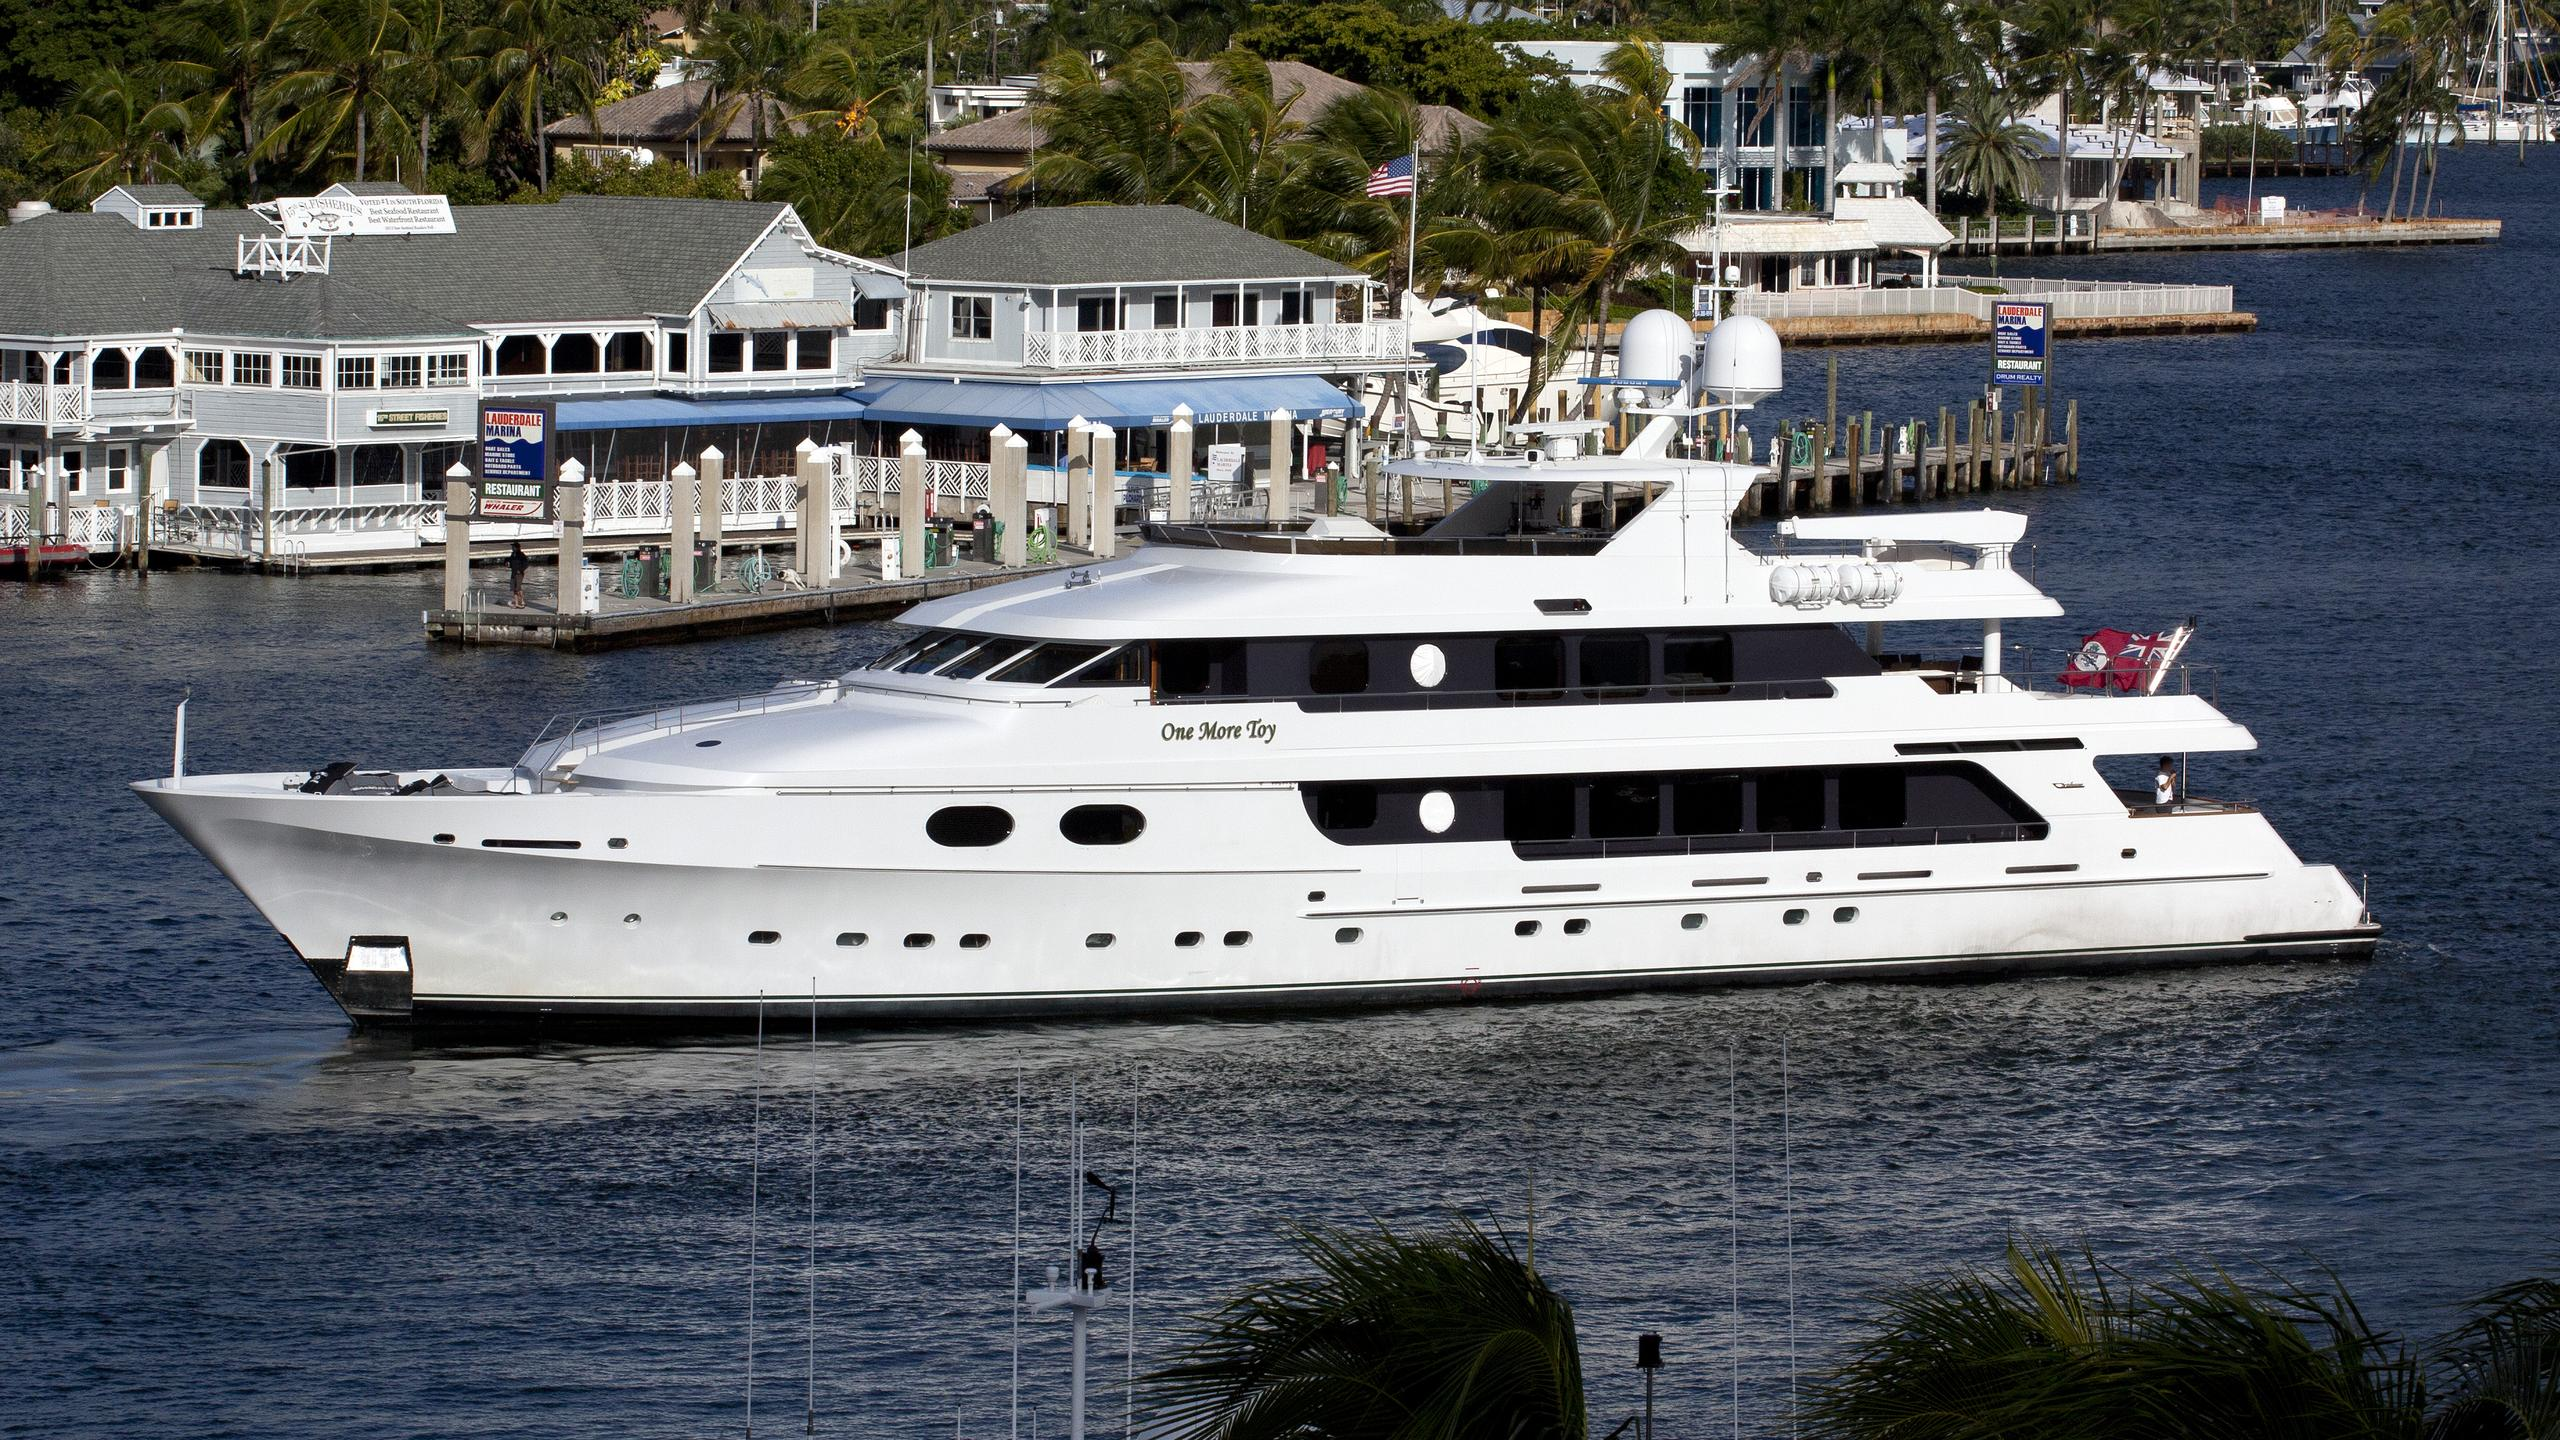 one-more-toy-yacht-exterior